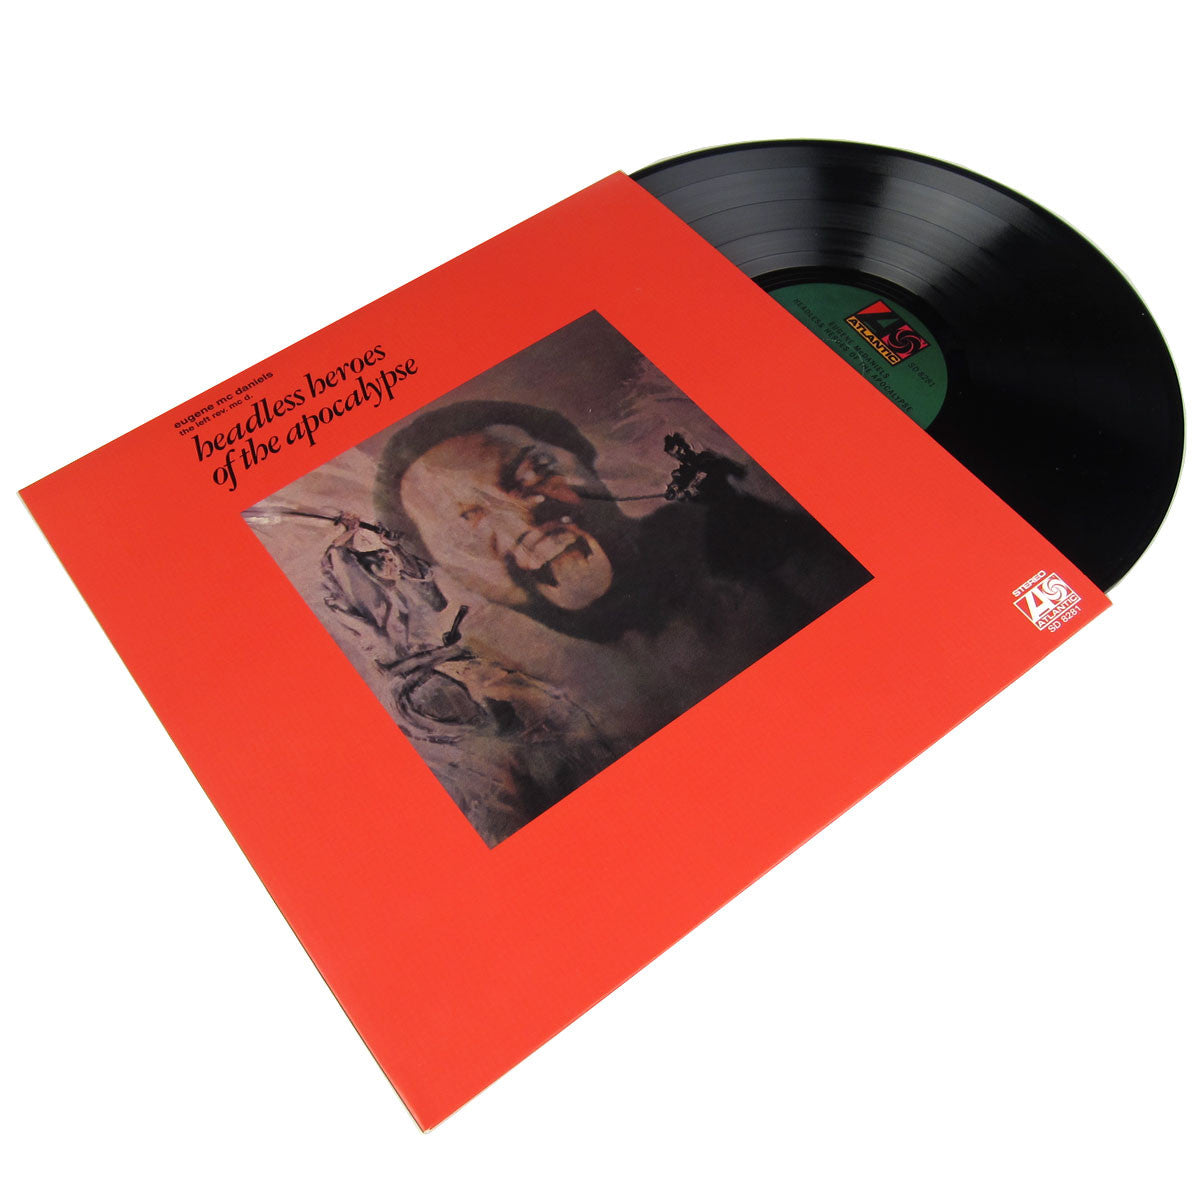 Eugene McDaniels: Headless Heroes Of The Apocalypse Vinyl LP